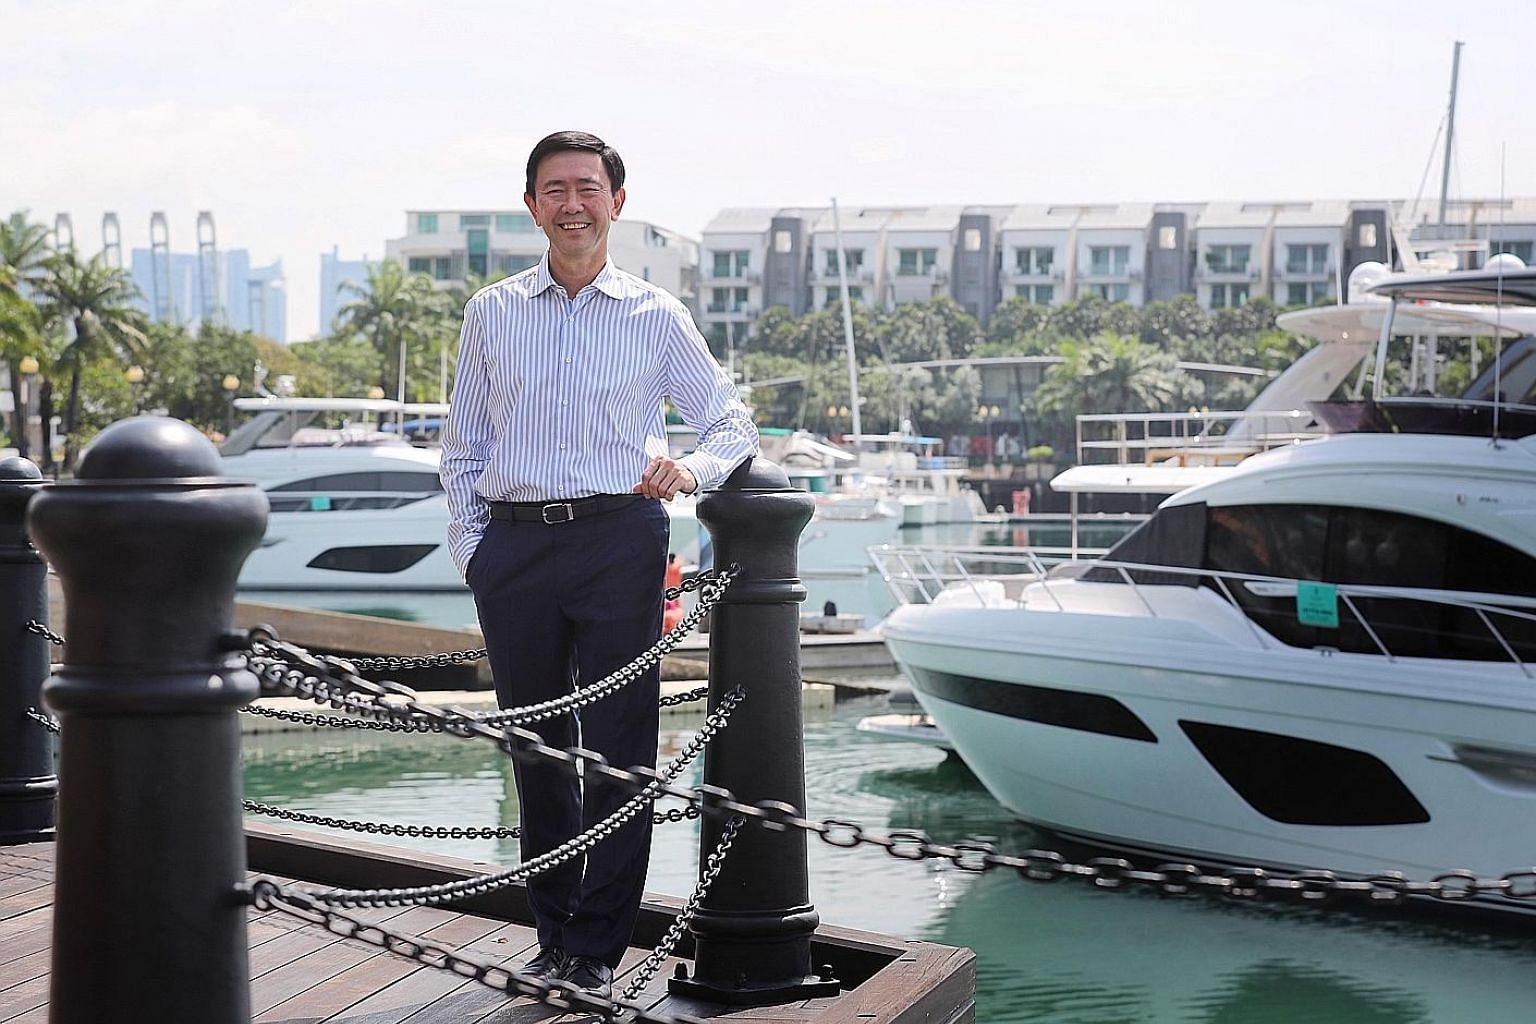 Mr Arthur Tay, executive director and chief executive of SUTL Enterprise, says it is his firm's dream to adorn a string of pearls along the beautiful coastlines of the world with each pearl representing a ONE°15 marina, where the international boati